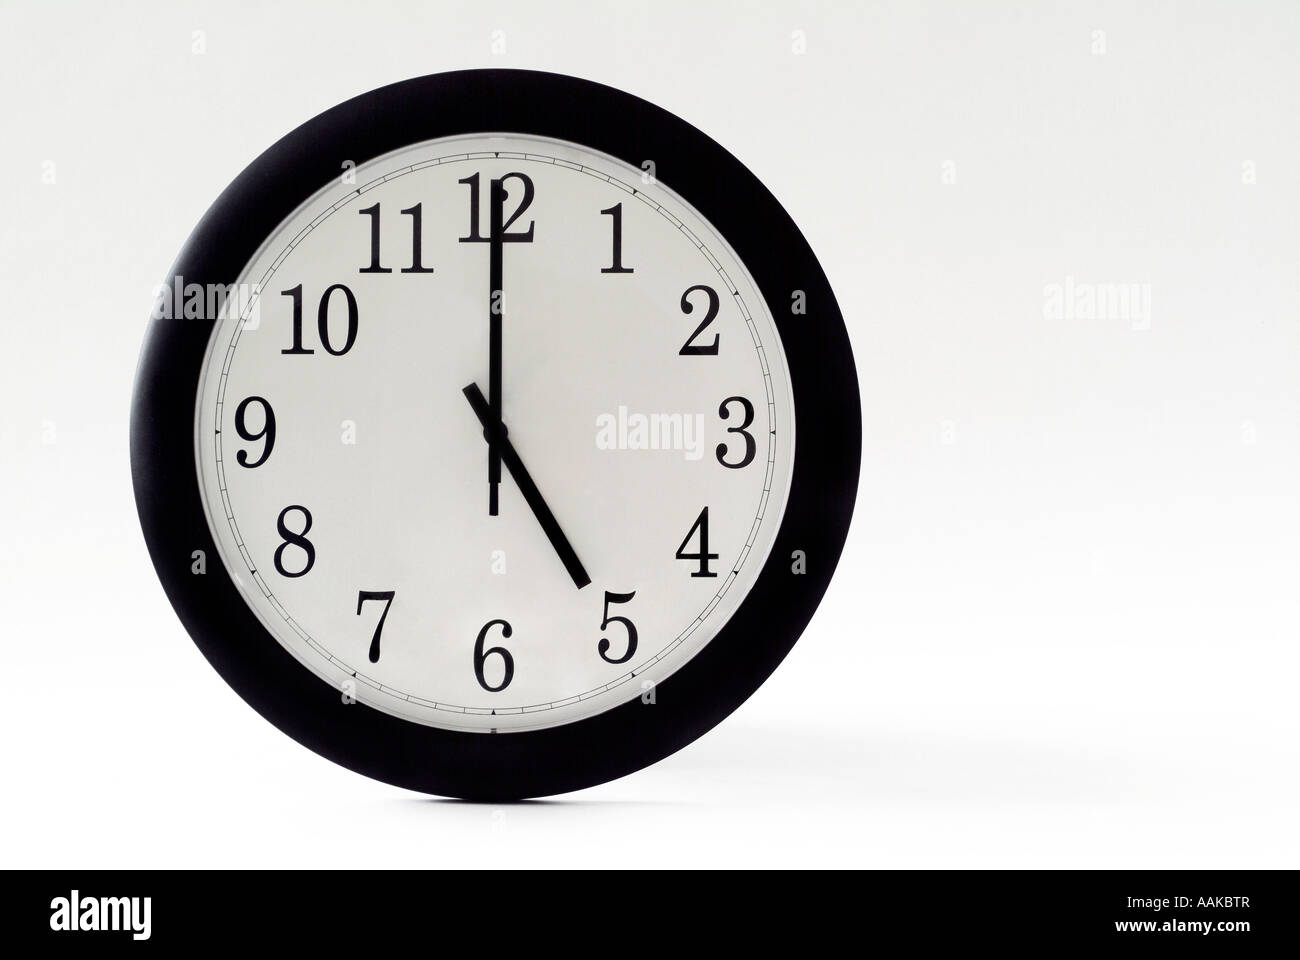 Five PM on the clock - Stock Image